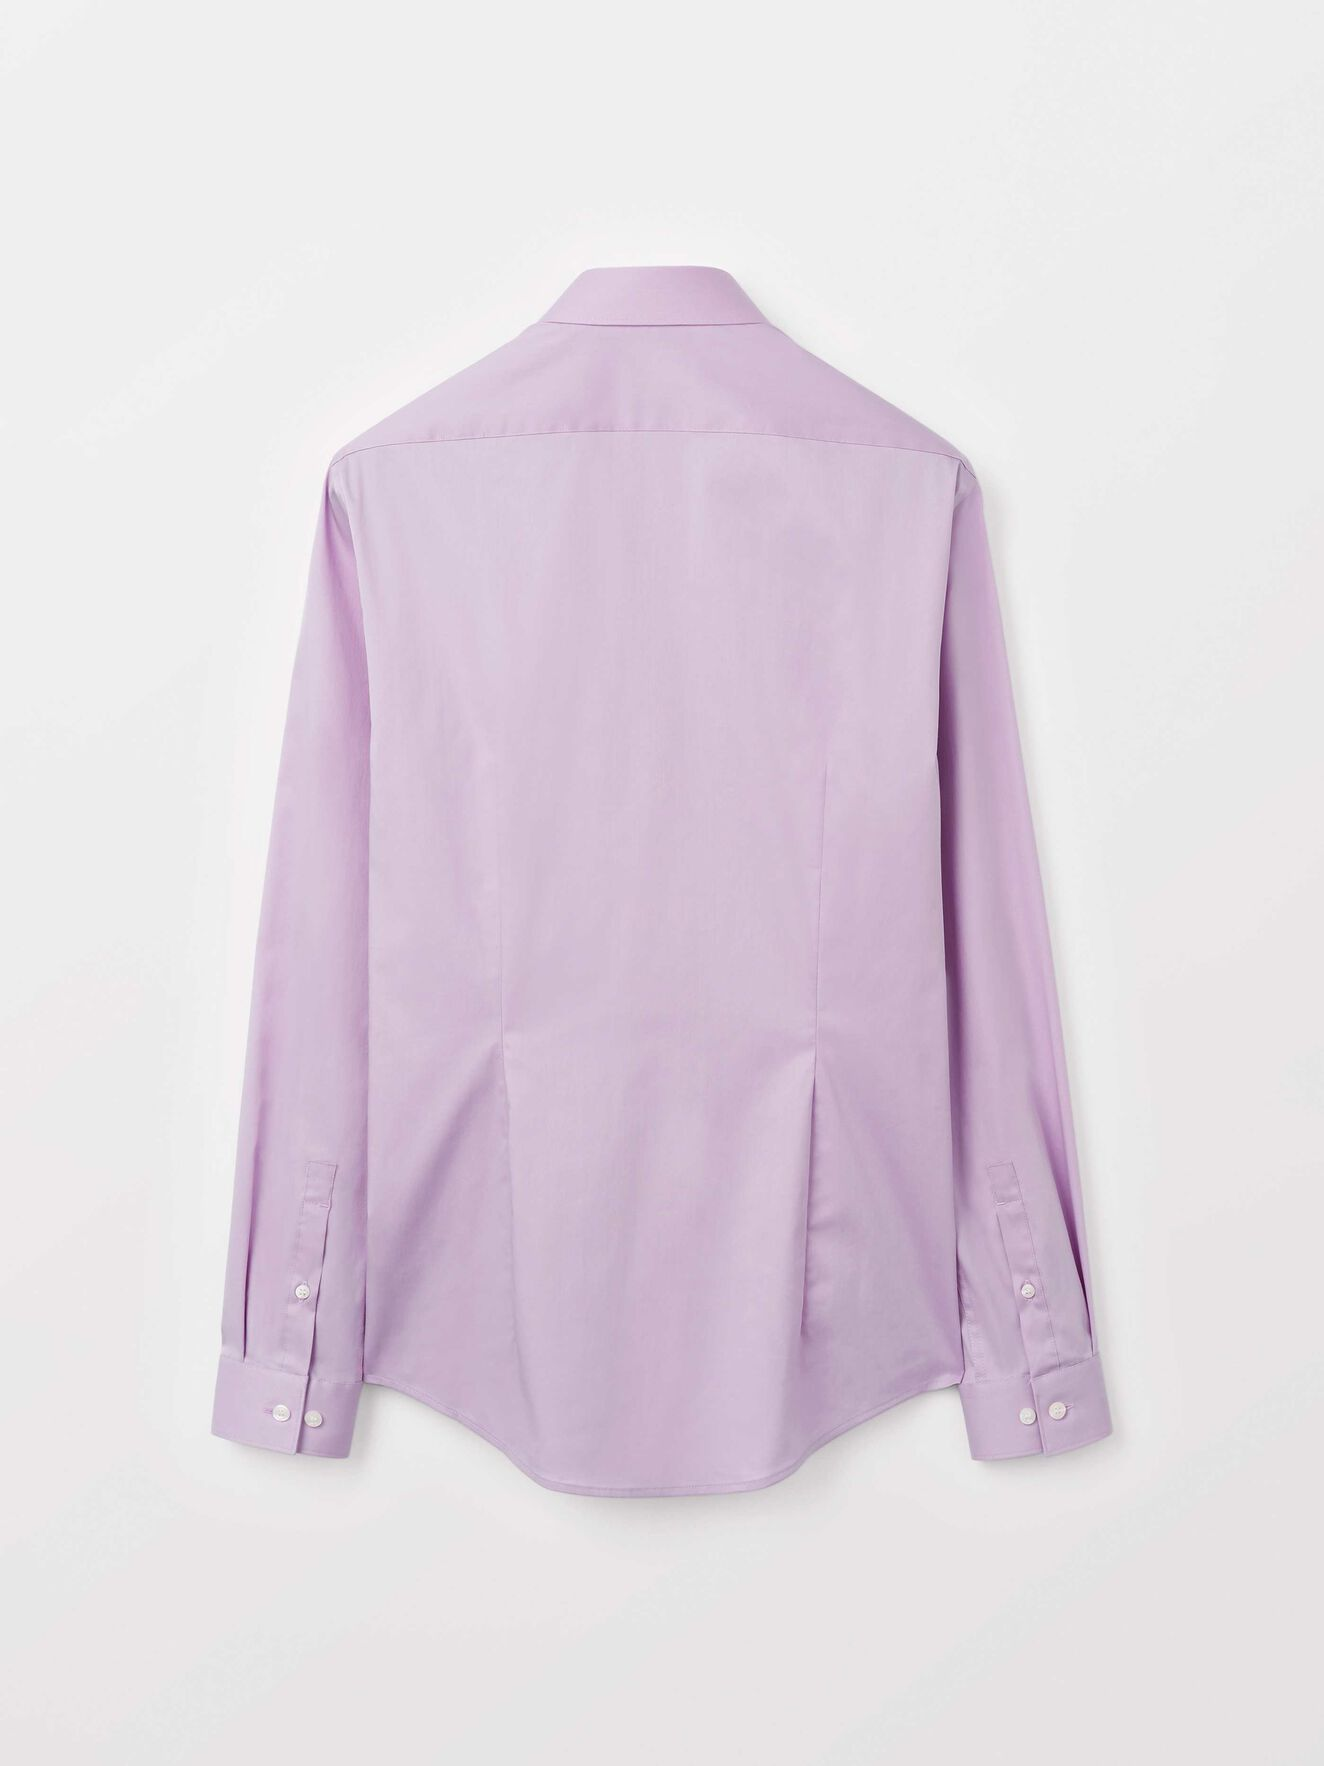 Filbrodie Shirt in Purple Air from Tiger of Sweden